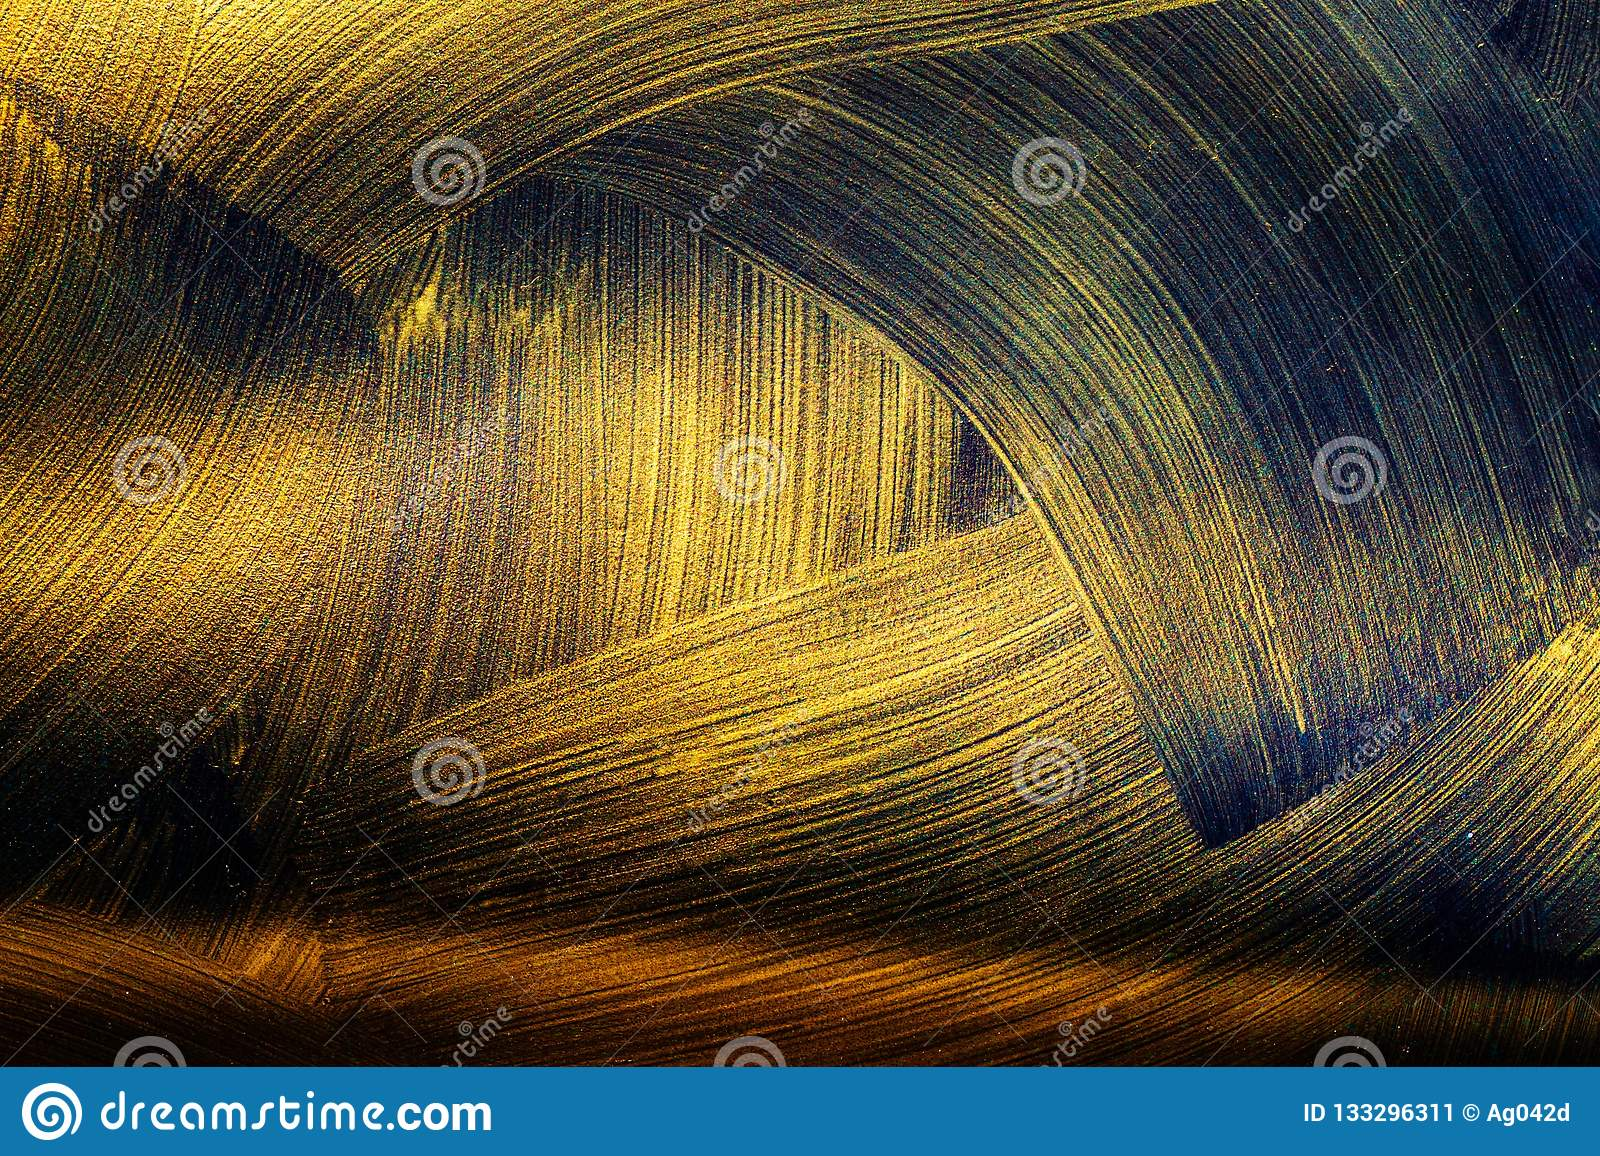 Texture Of Black Gold Abstract Seamless Texture Fractal